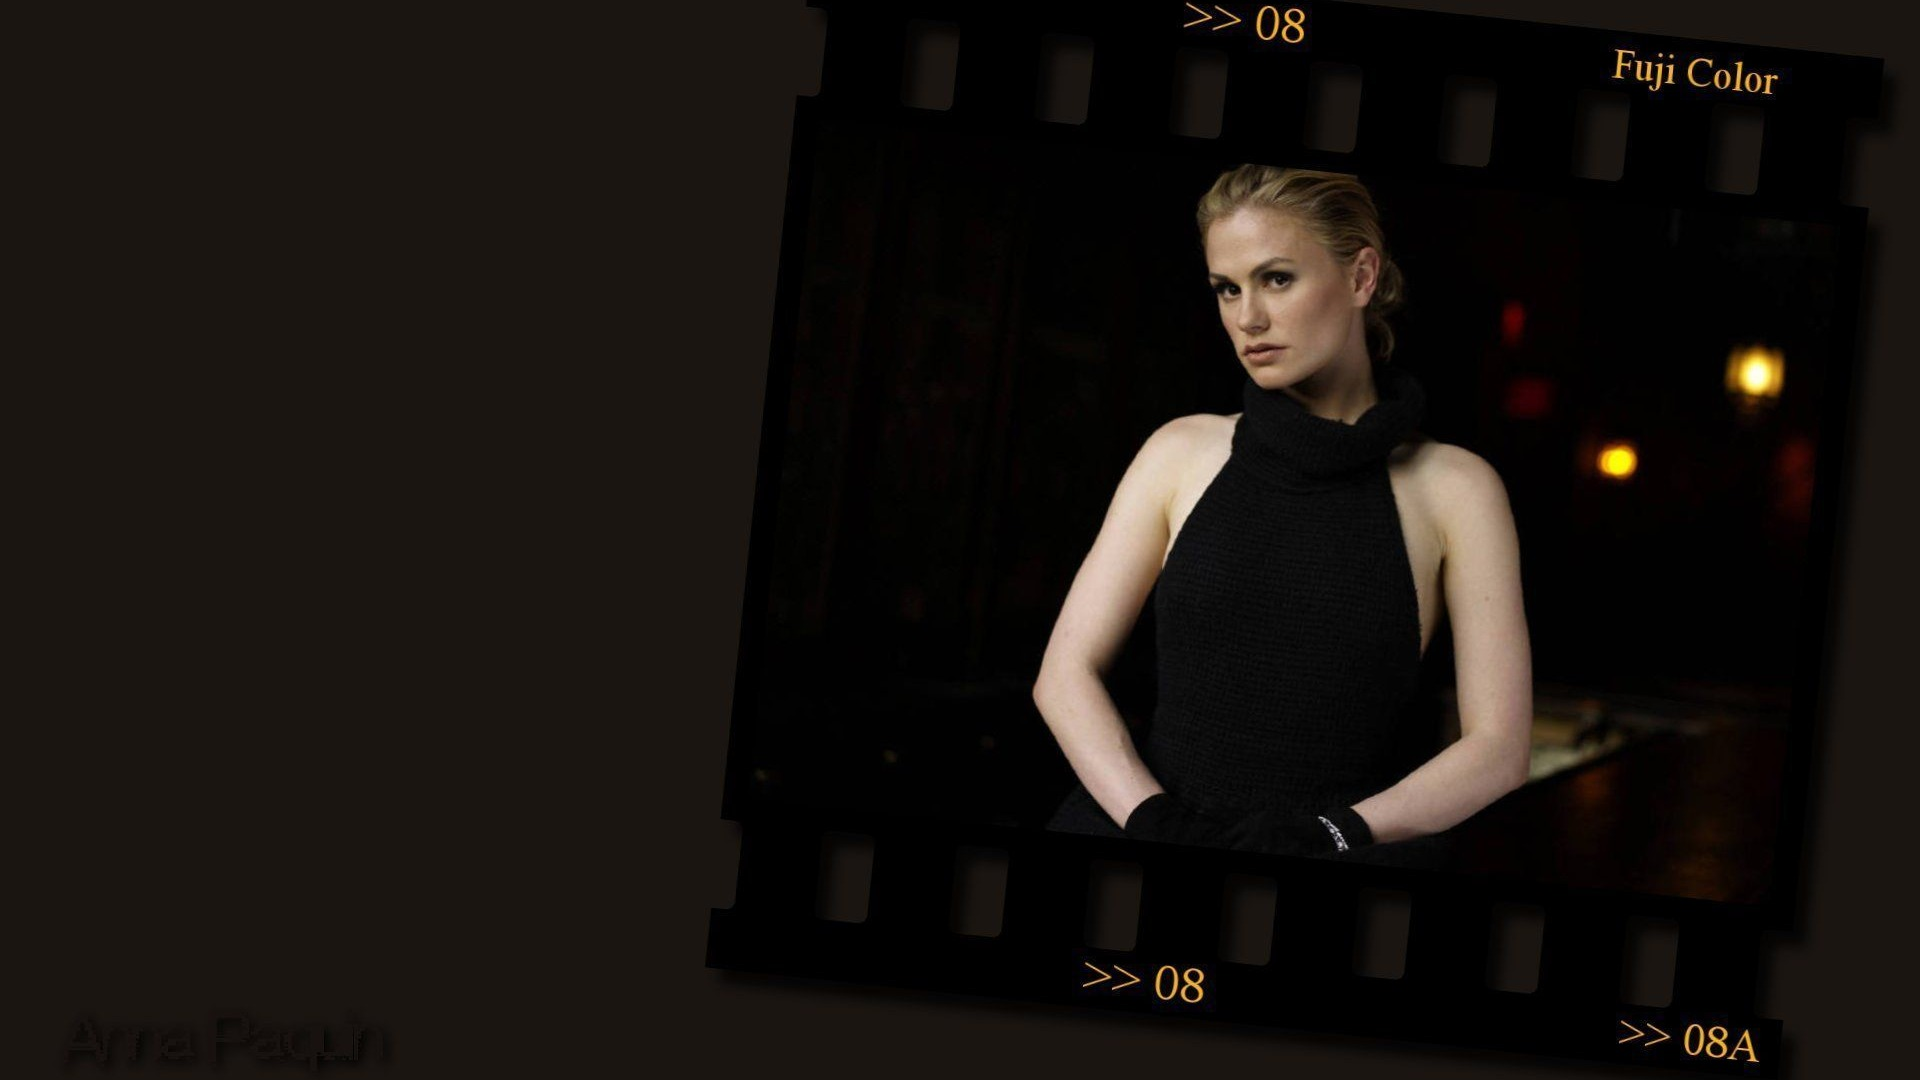 ... Anna Paquin wallpapers / Wallpaper Download - Anna Paquin #008